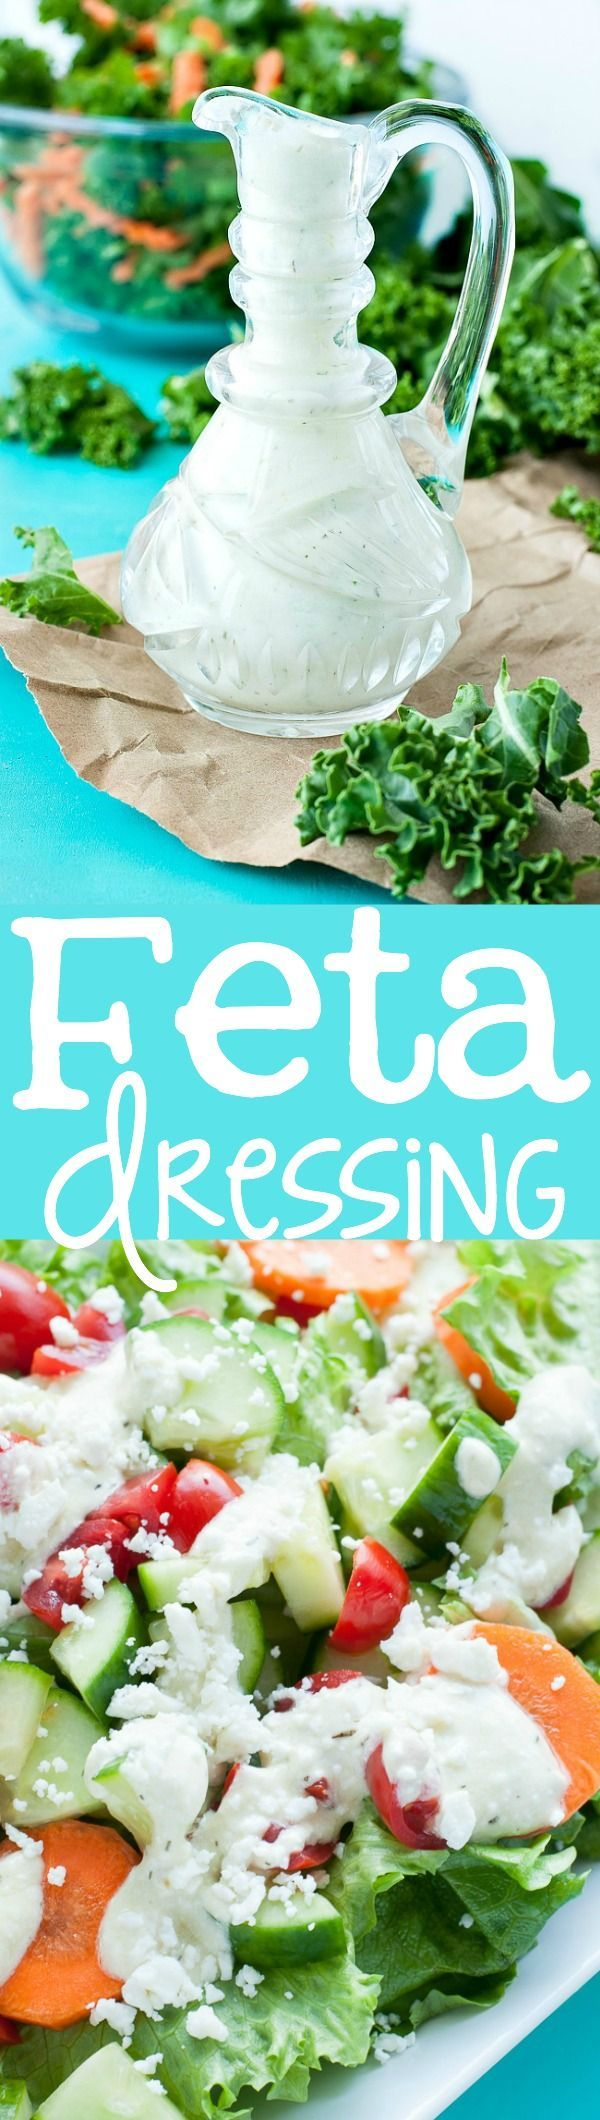 Super easy and ready in under 6 minutes, you'll want to slather this Creamy Feta Dressing on everything in sight!